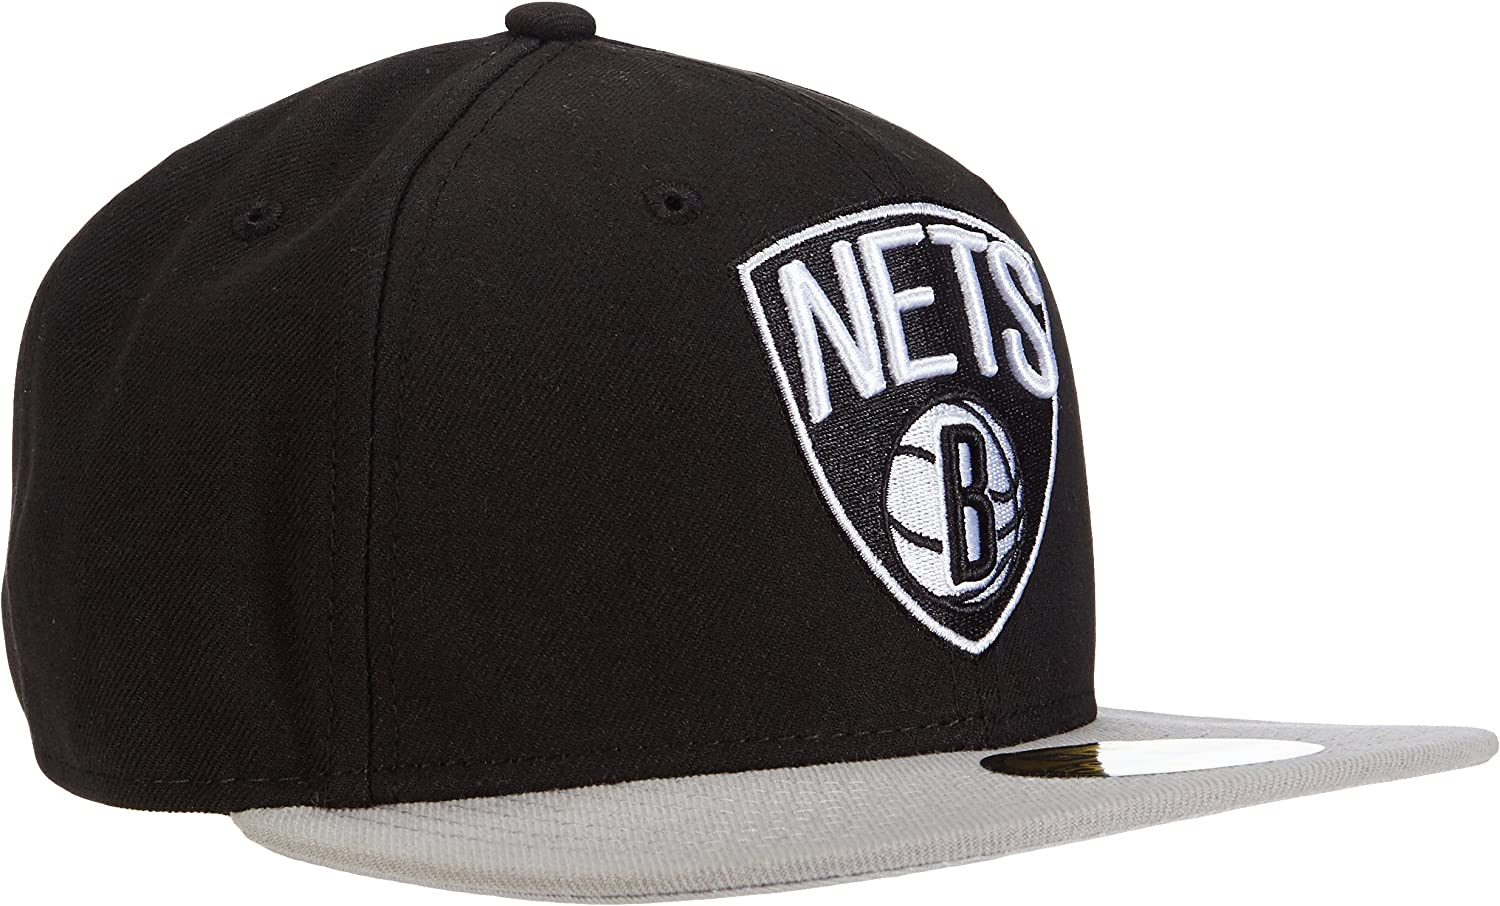 A NEW ERA Era NBA Basic Brooklyn Nets Gorra, Hombre: Amazon.es ...